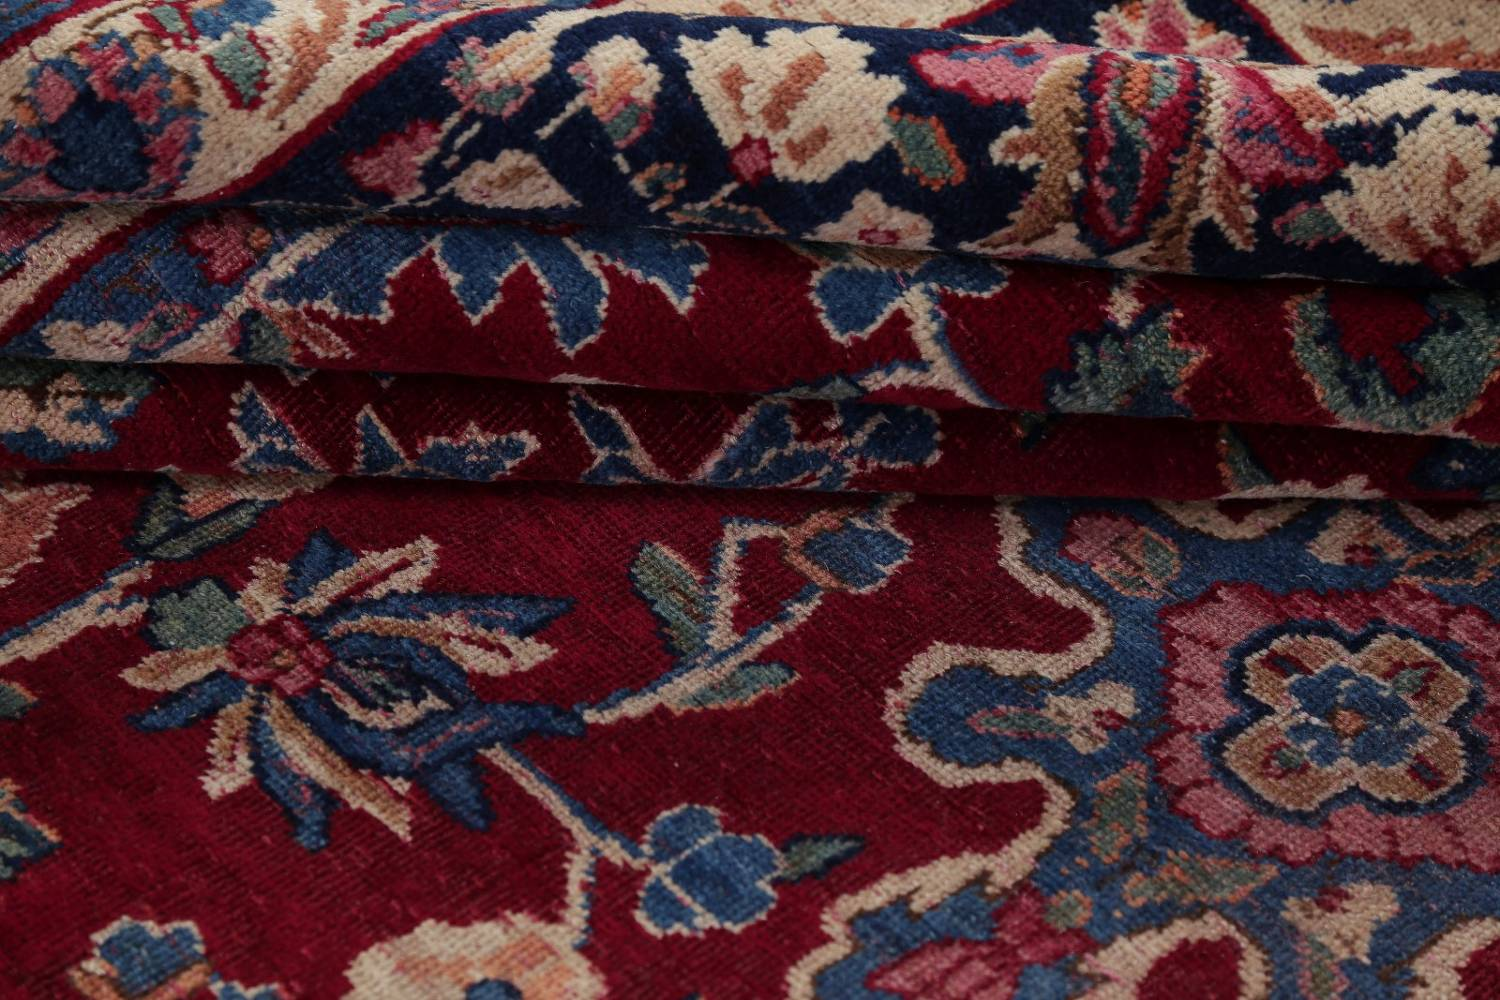 All-Over Floral 11x16 Yazd Persian Area Rug image 21